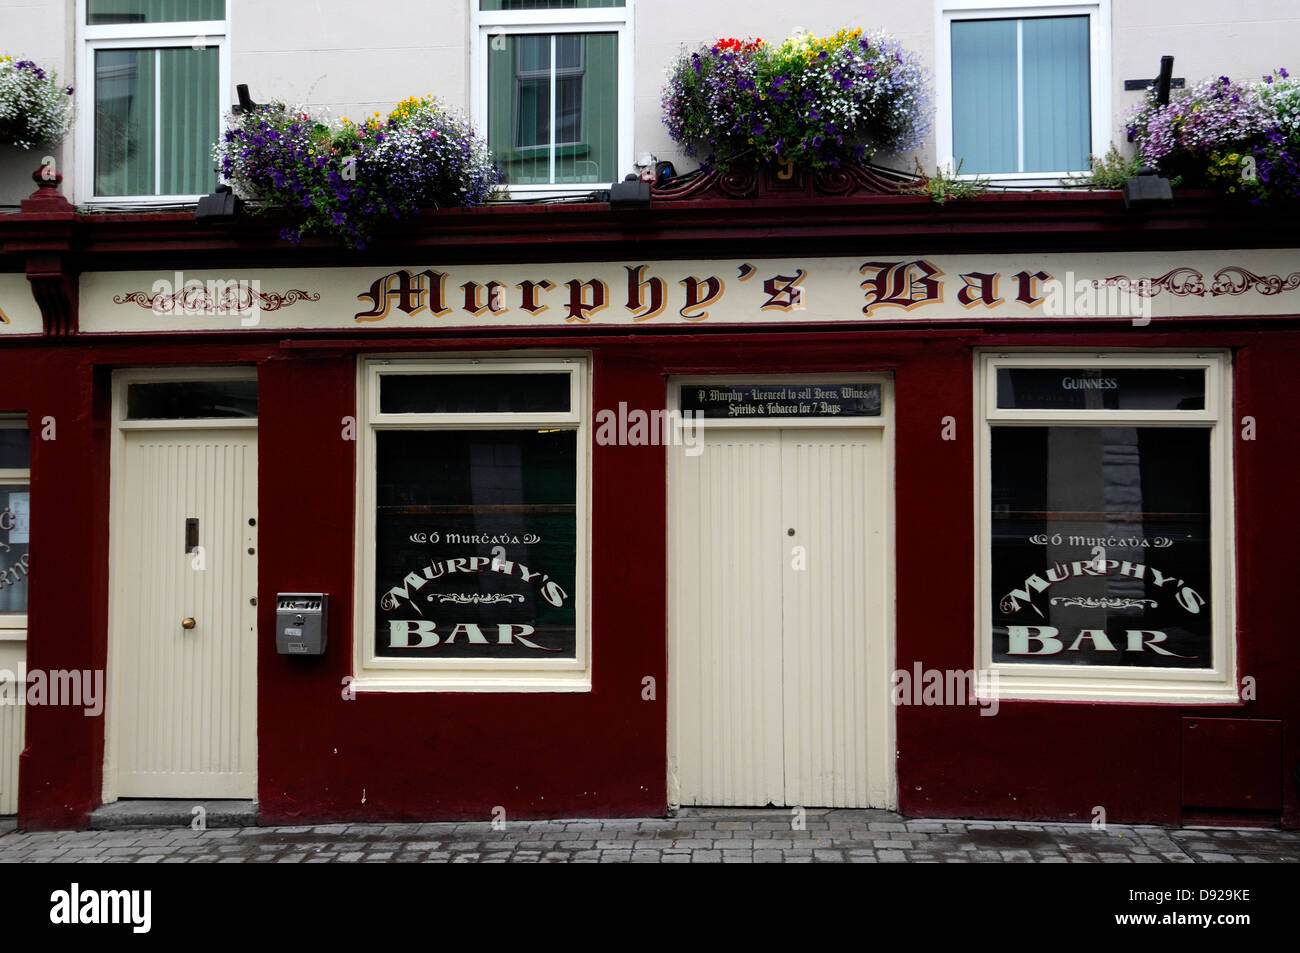 Murphy's bar pub licensed premises galway ireland frontal front street frontage view closed doors traditional - Stock Image